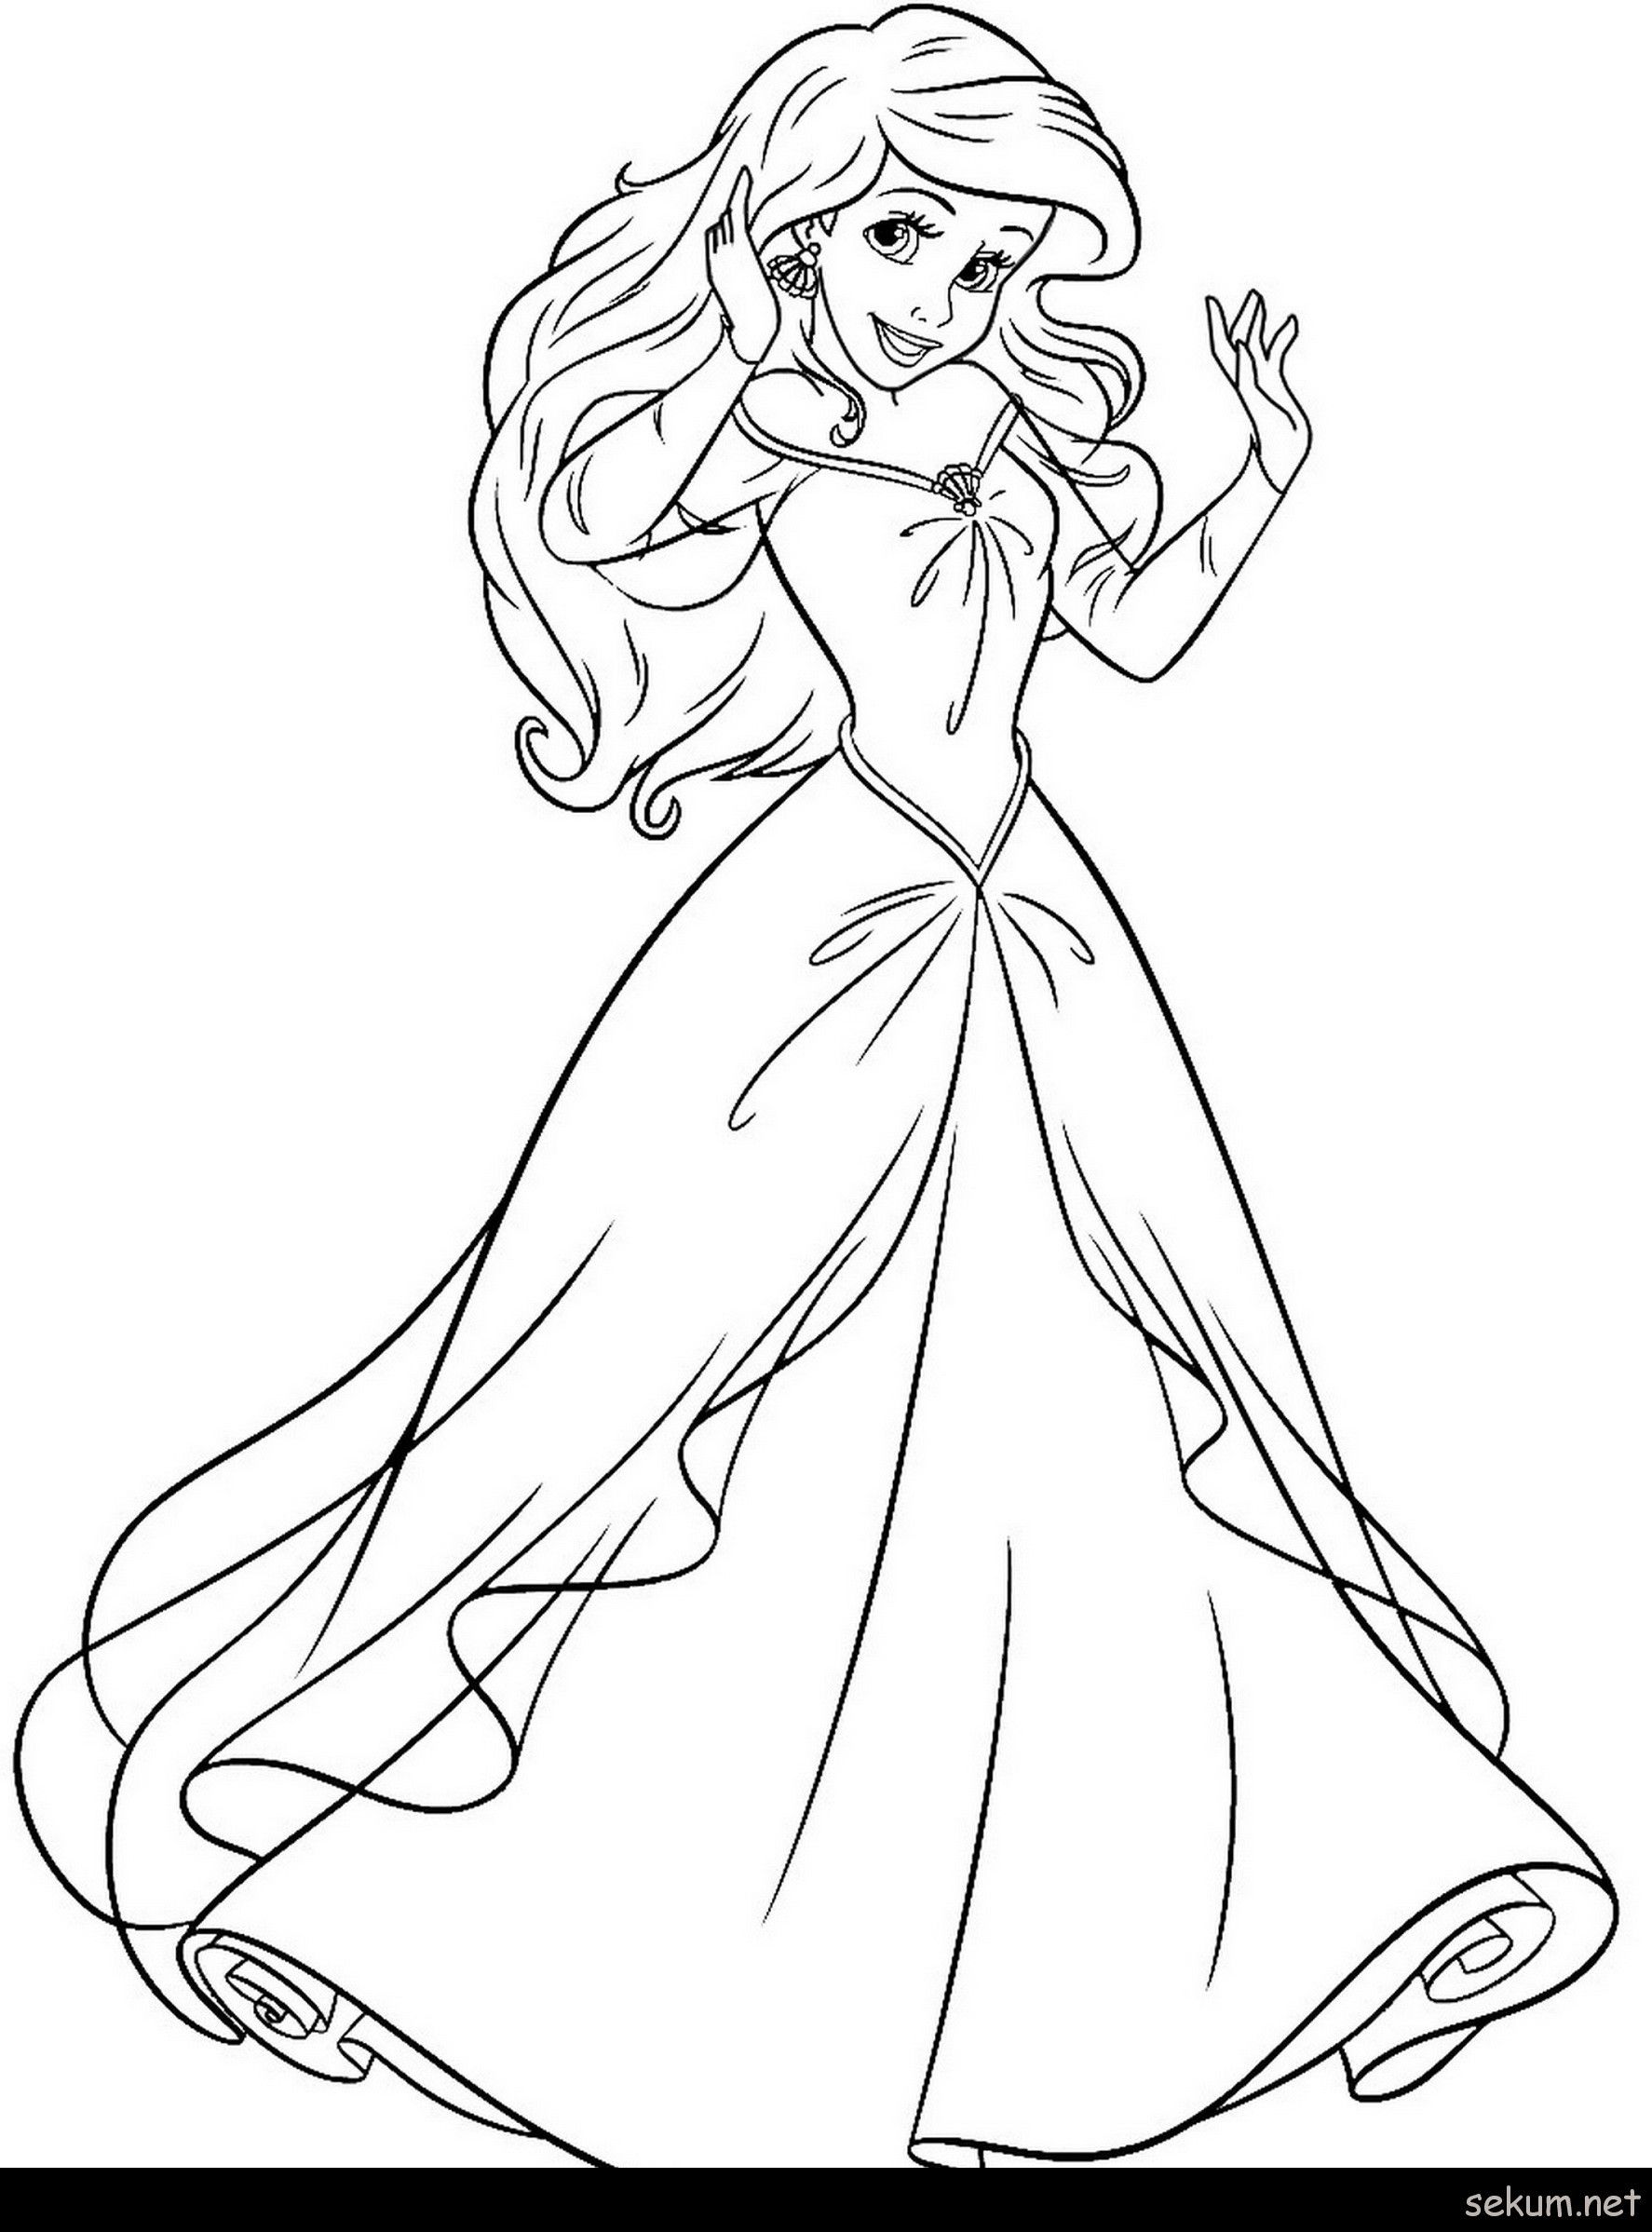 Princess Ariel Coloring Page Youngandtae Com Ariel Coloring Pages Disney Princess Coloring Pages Princess Coloring Pages